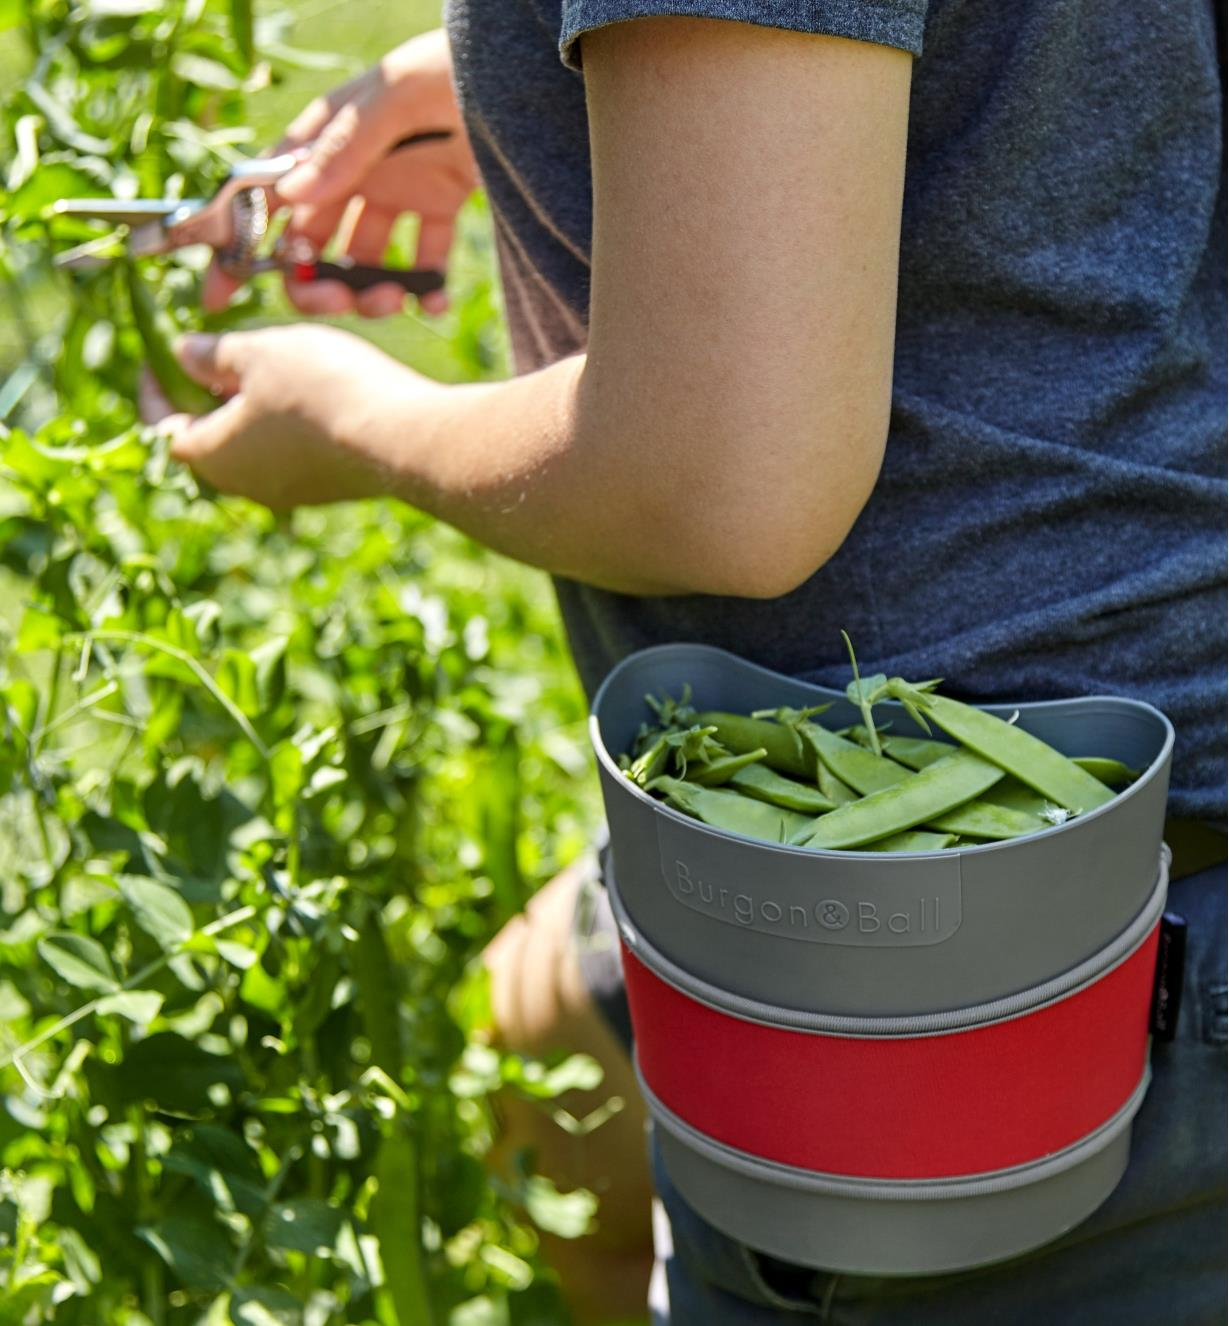 A gardener harvests snow peas, collecting them in a small hip-trug